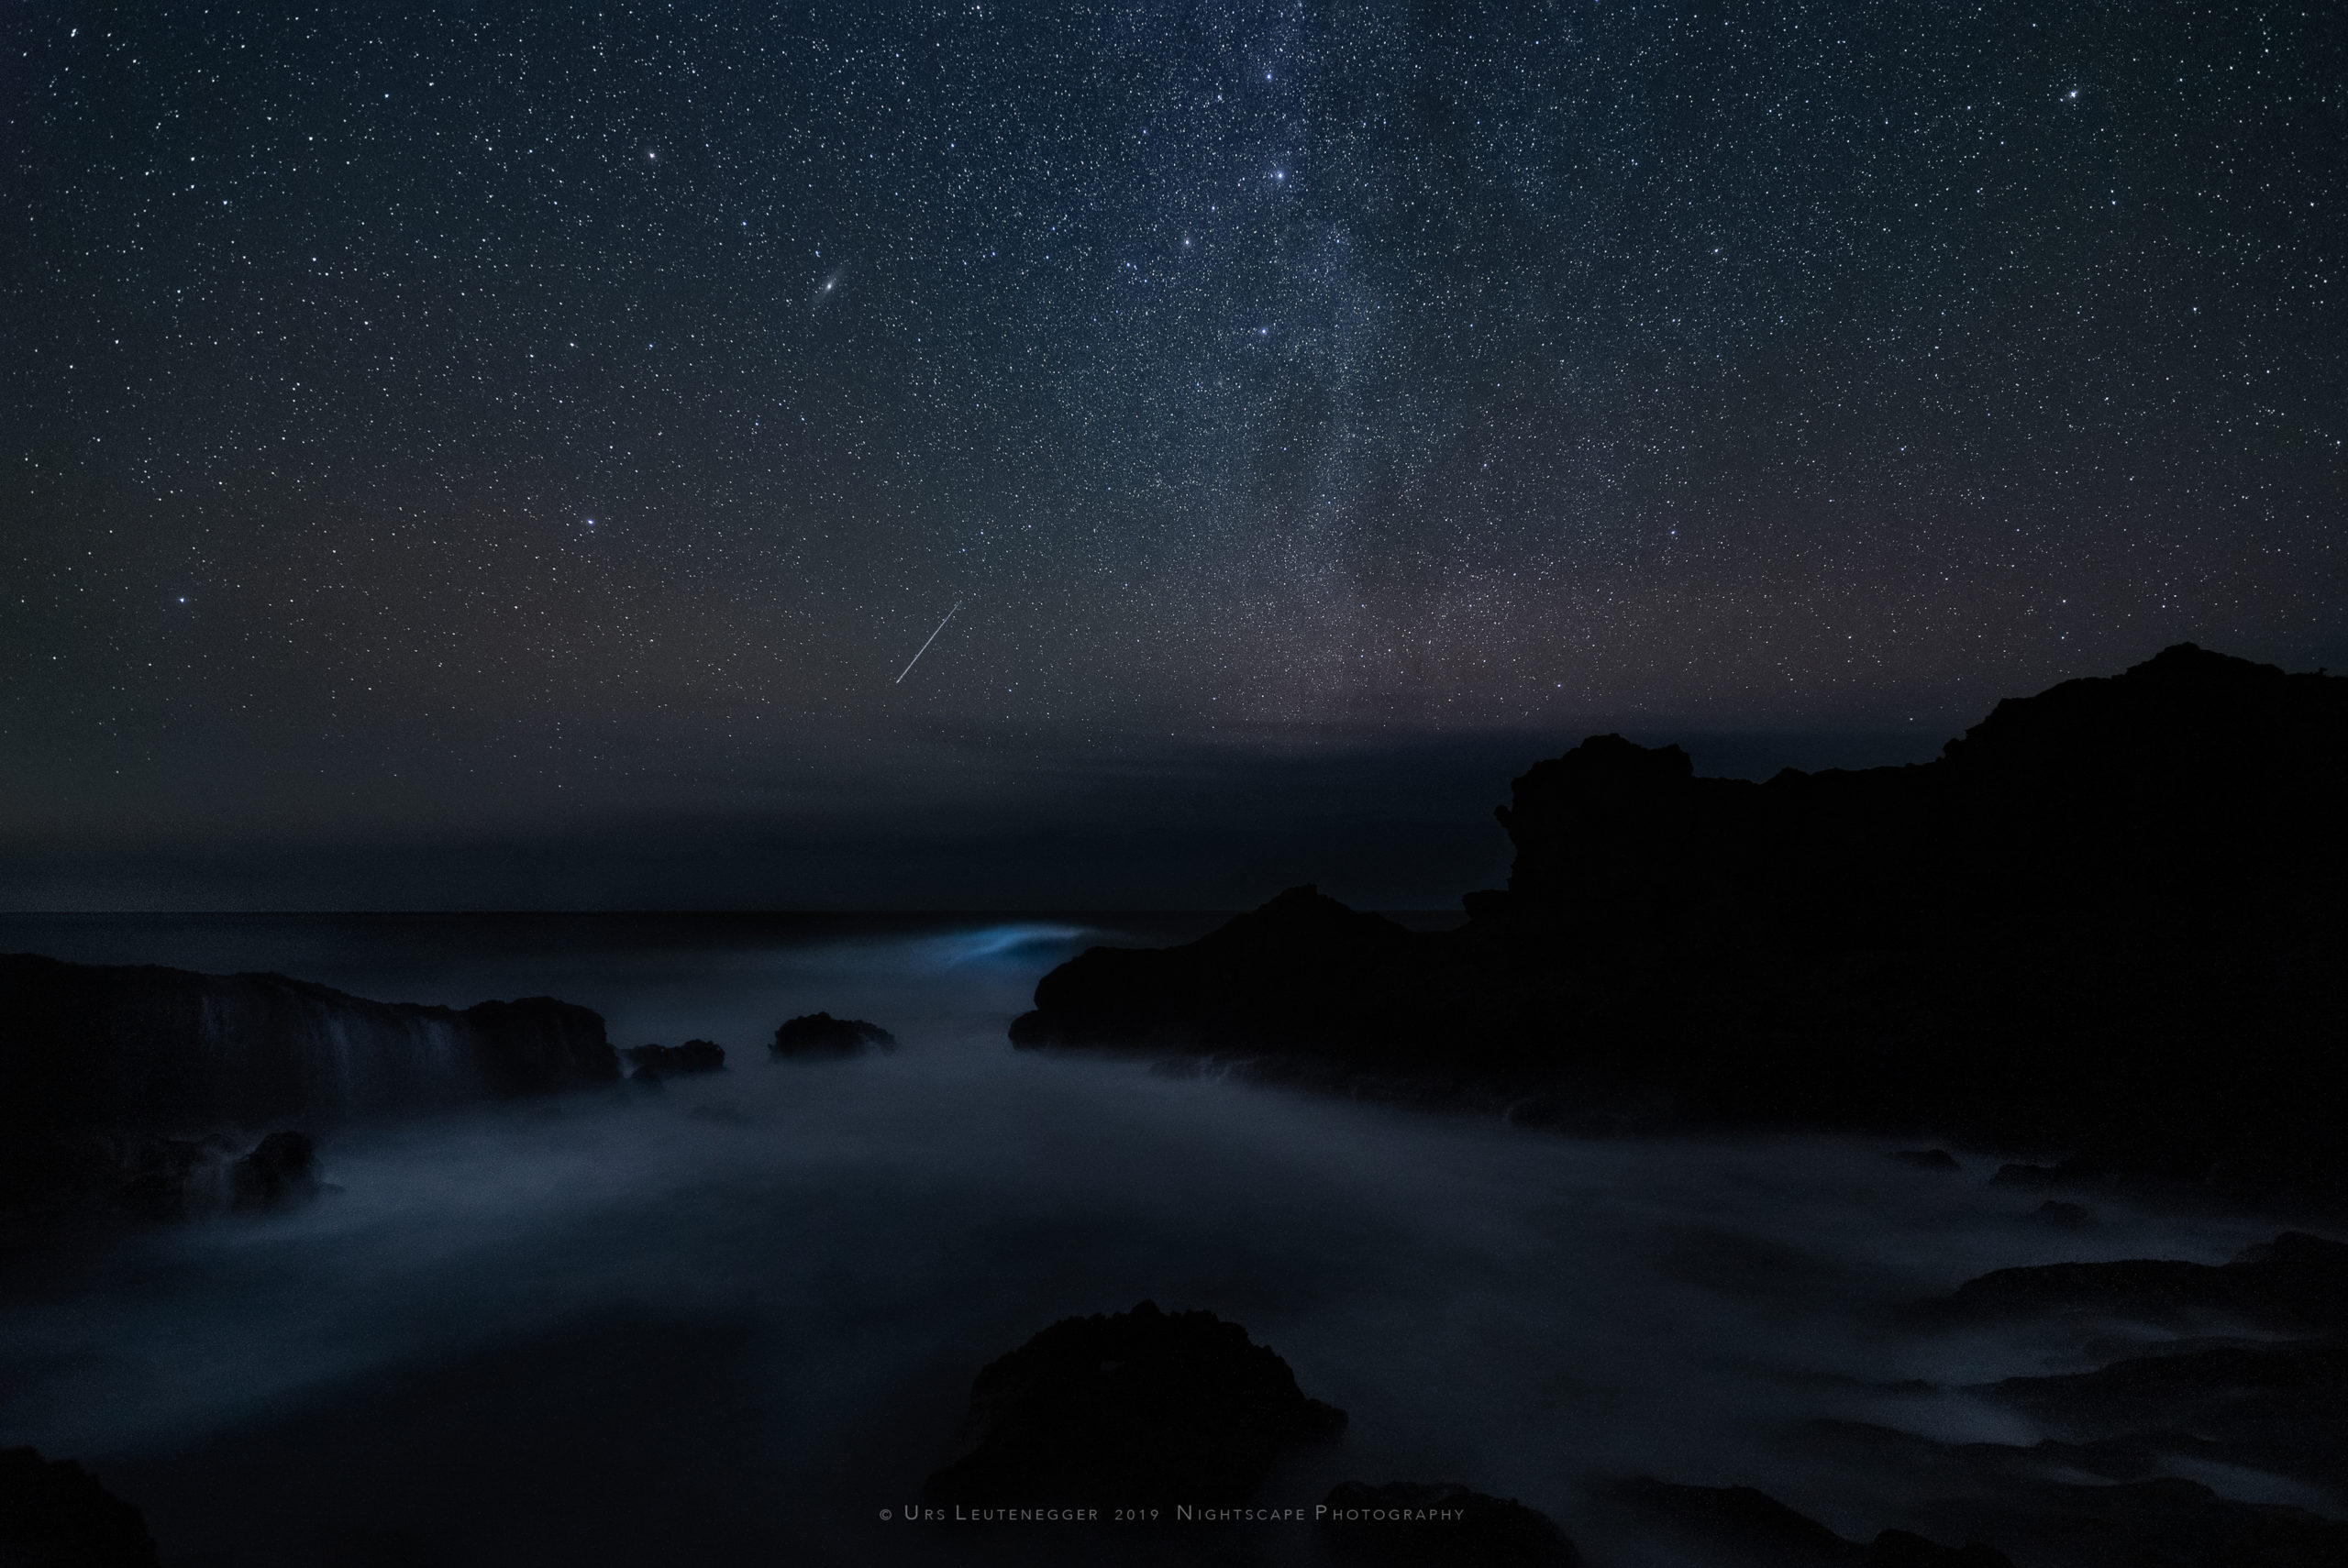 Vertical Milky way over Atlantic Ocean, Cassiopeia and Andromeda, bioluminescence in sea wave, single meteor hitting atmosphere close to horizon. Natural night sky glow. Northwest of La Palma.